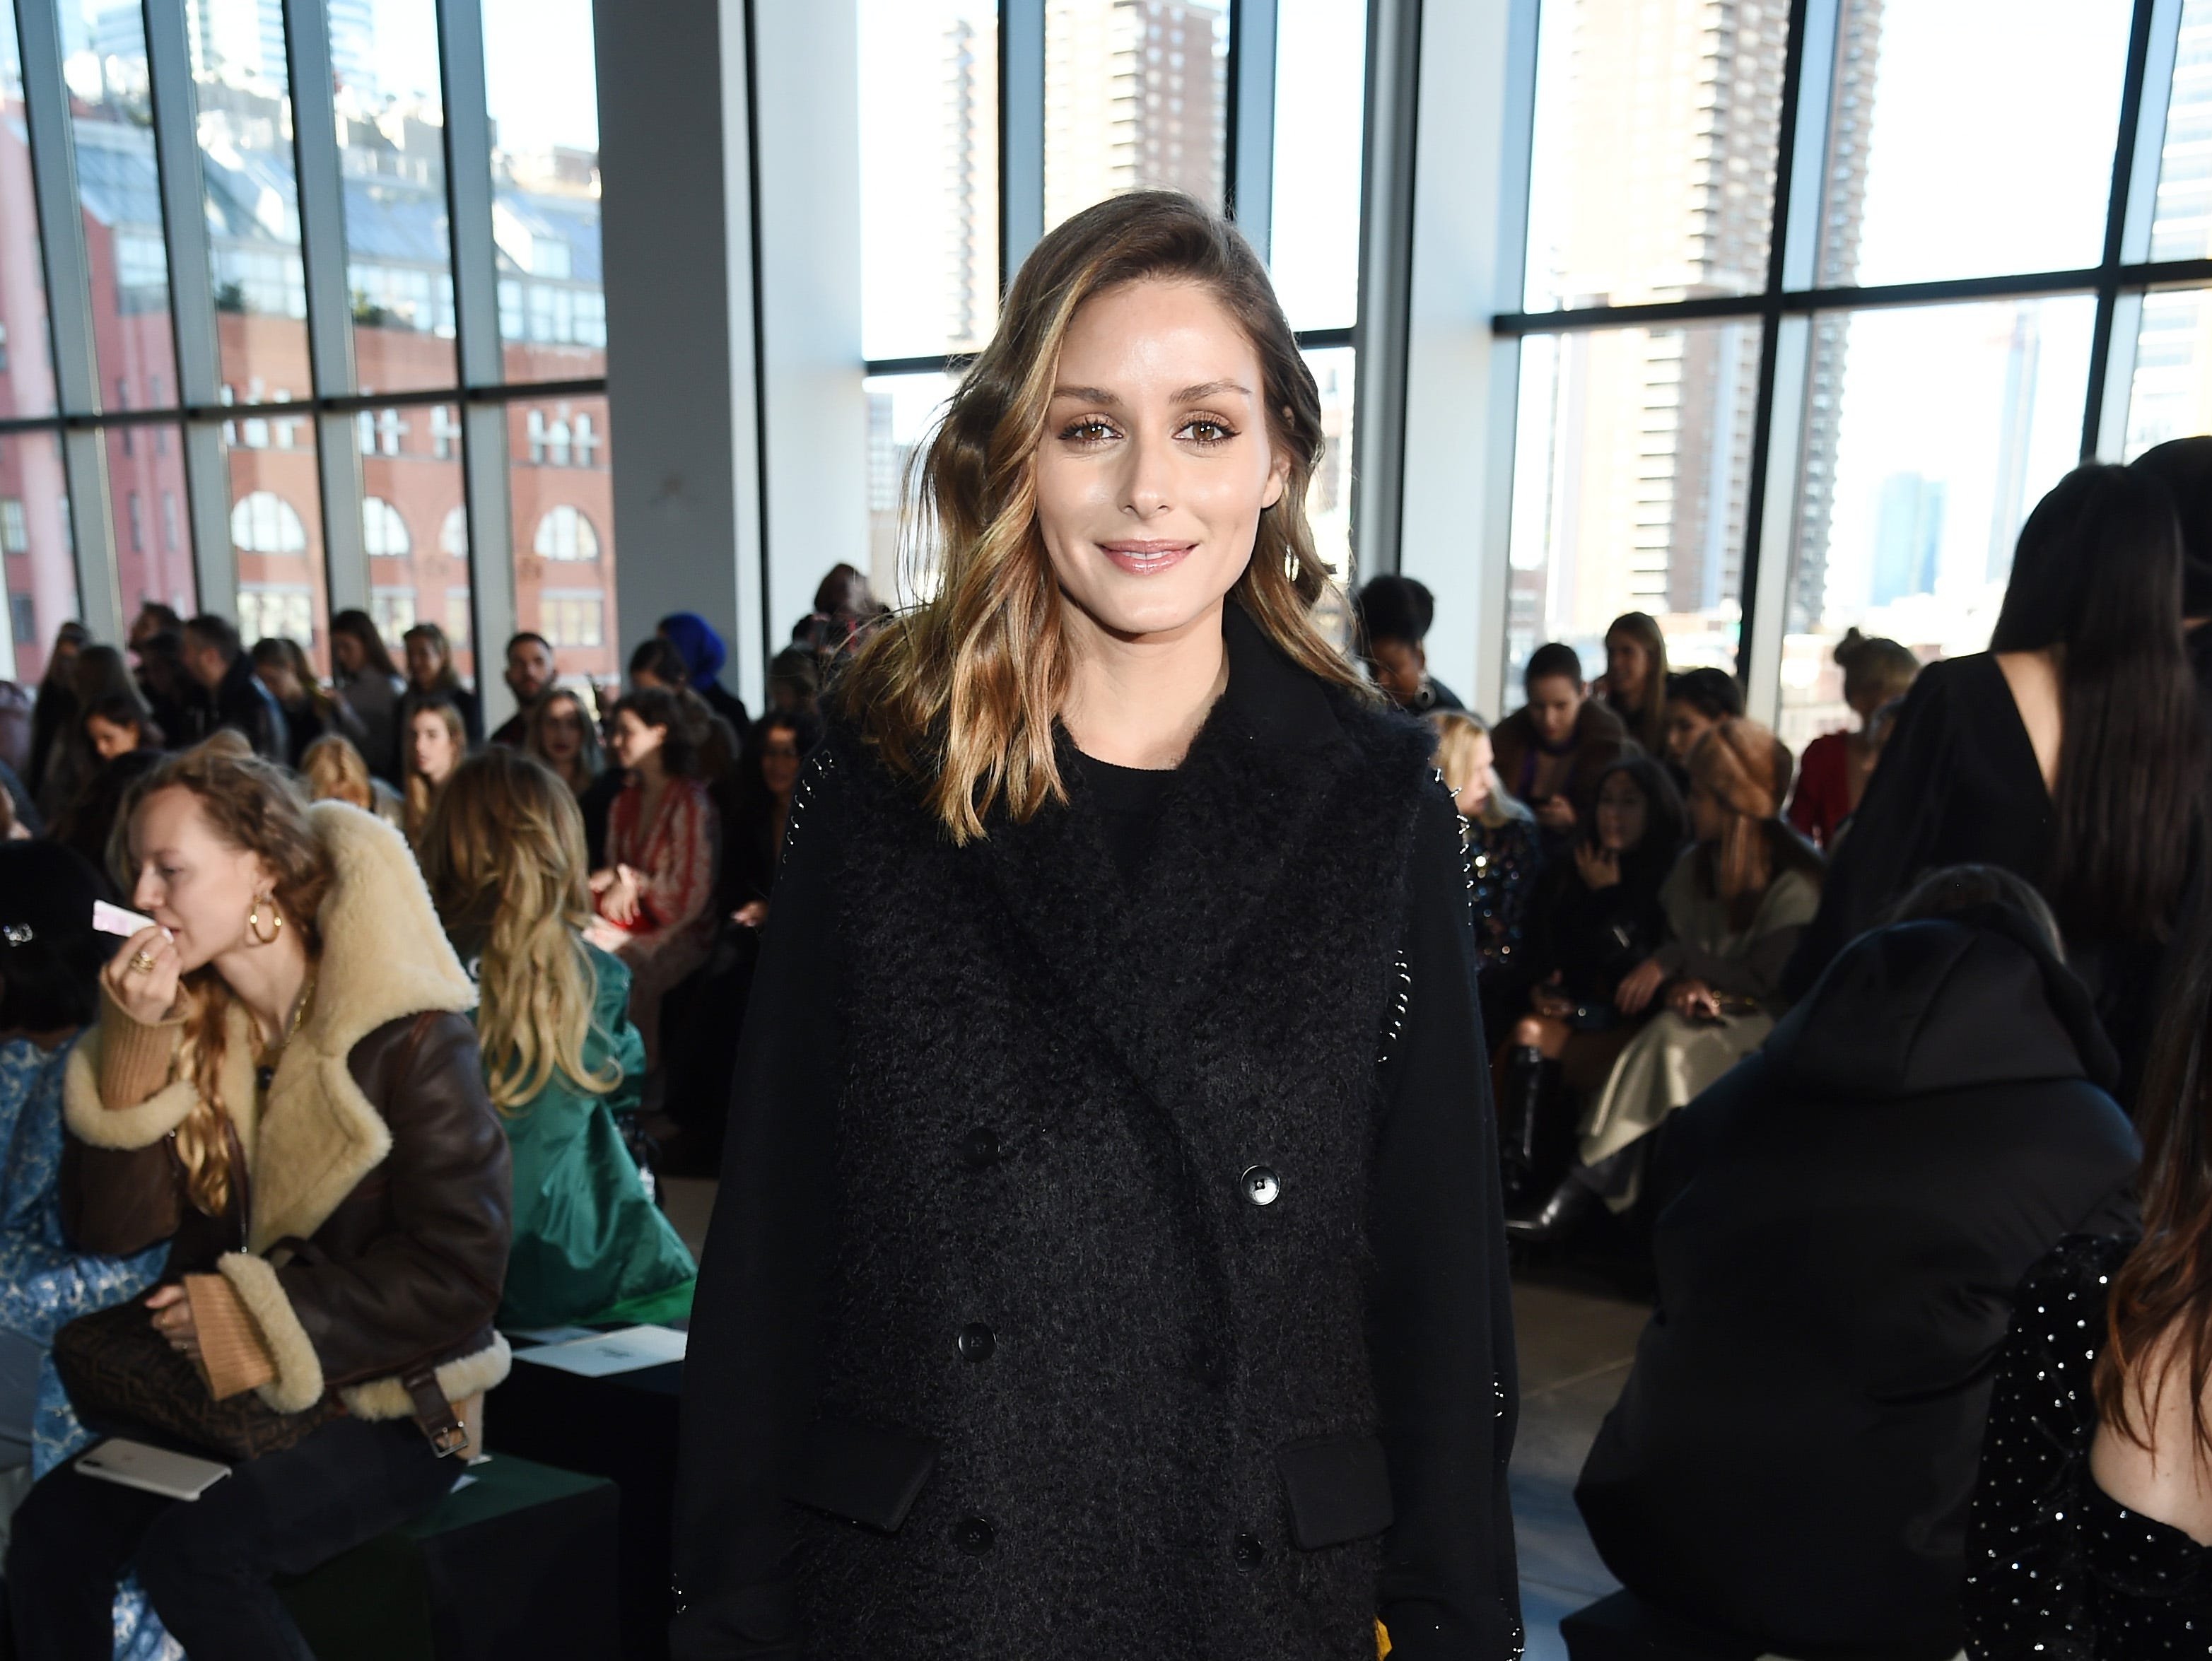 NEW YORK, NY - FEBRUARY 09: Olivia Palermo attends the Self-Portrait front row during New York Fashion Week: The Shows at Gallery I at Spring Studios on February 9, 2019 in New York City.  (Photo by Dimitrios Kambouris/Getty Images for NYFW: The Shows) ORG XMIT: 775290796 ORIG FILE ID: 1096556654